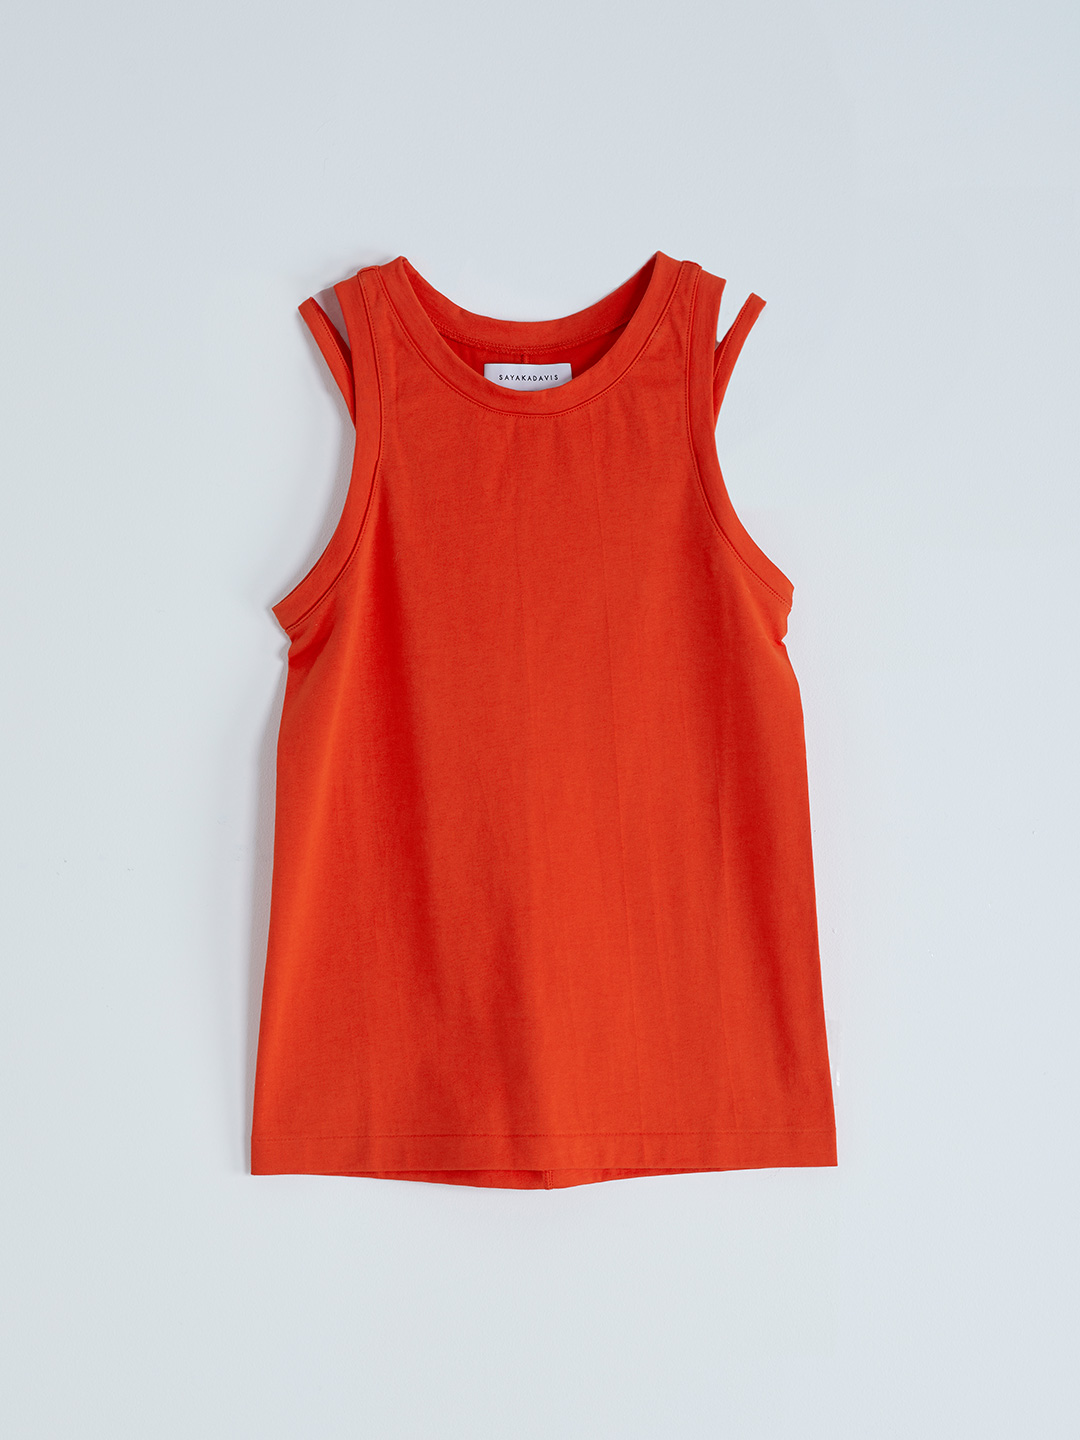 Double Strap Tank - Red【LIMITED ITEM】